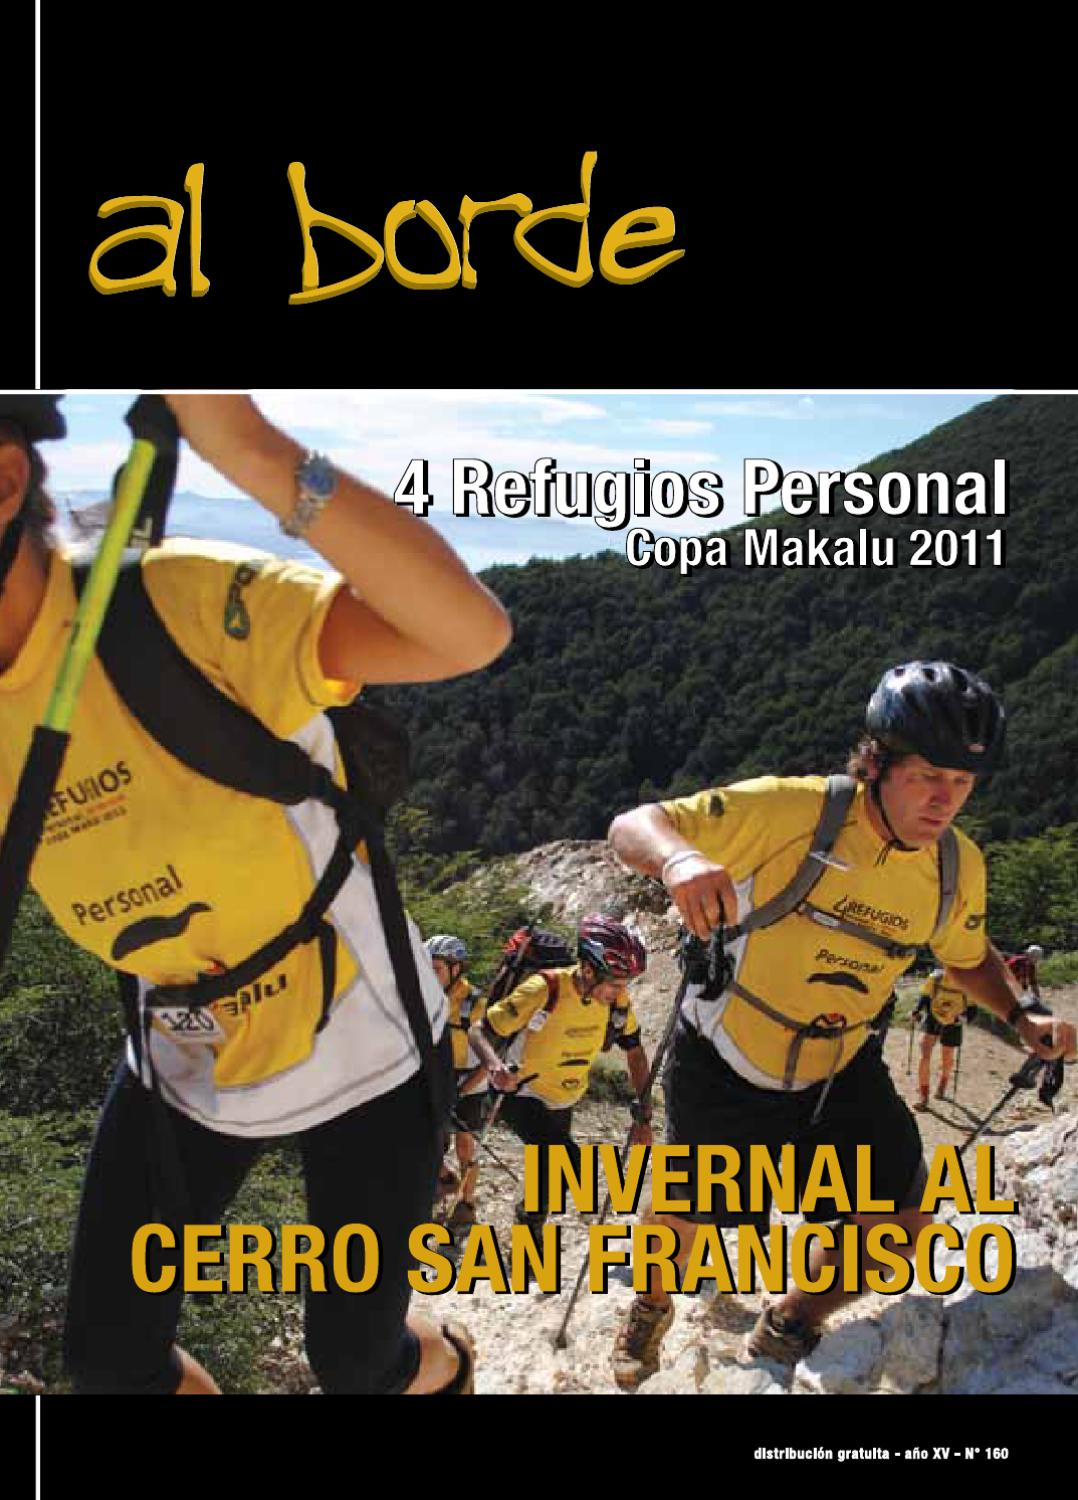 Al borde 160 by Al borde - issuu